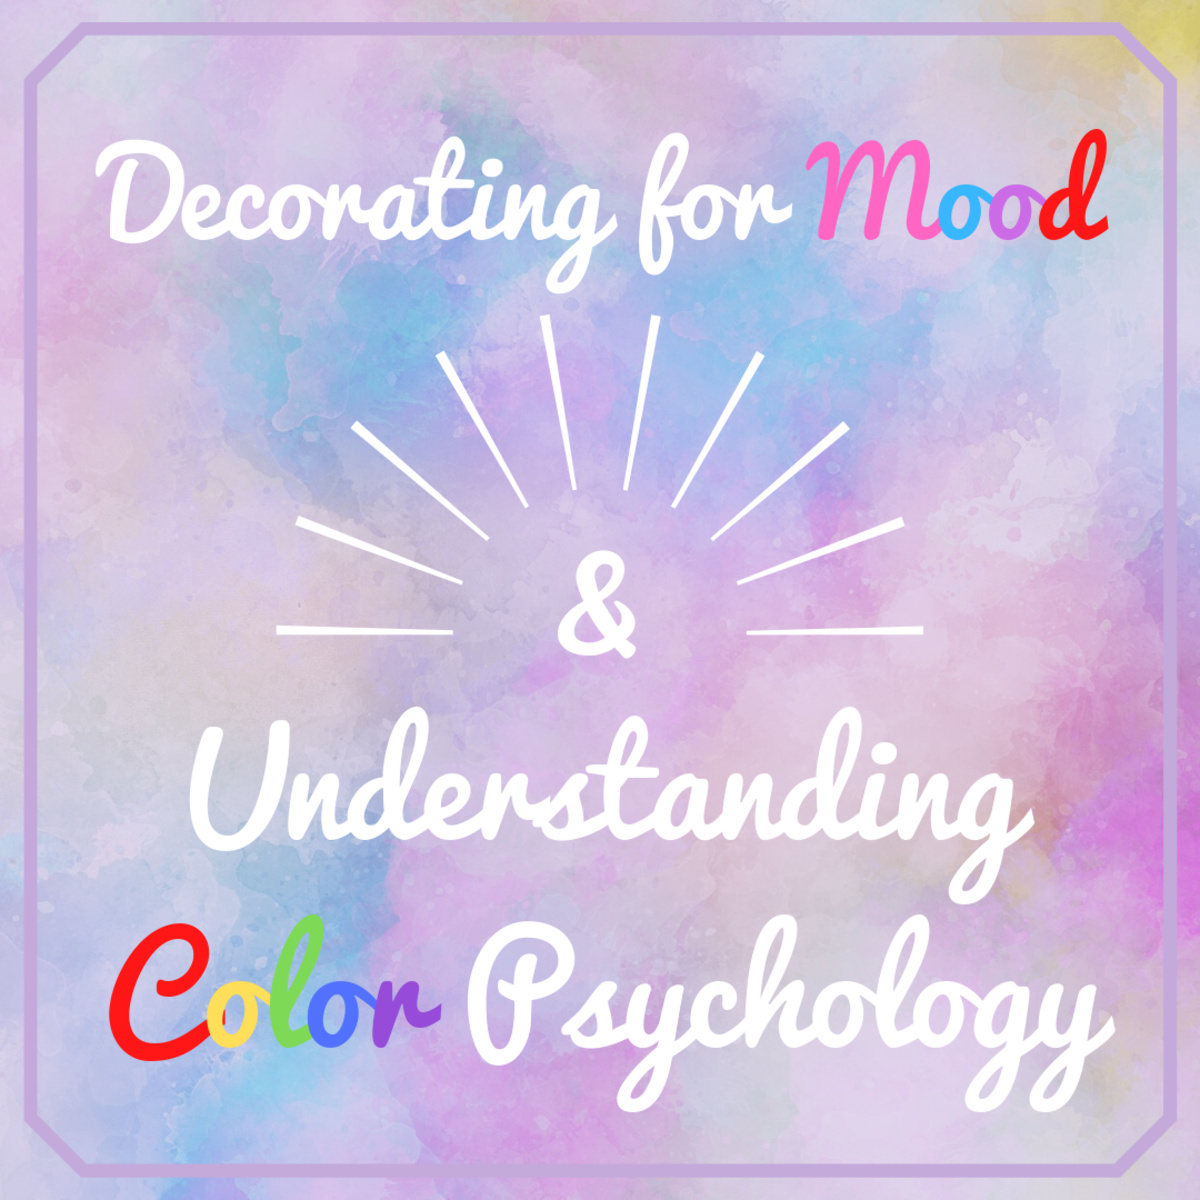 This article will break down some fundamentals of color psychology and help provide you with information on how to best use color around your home.